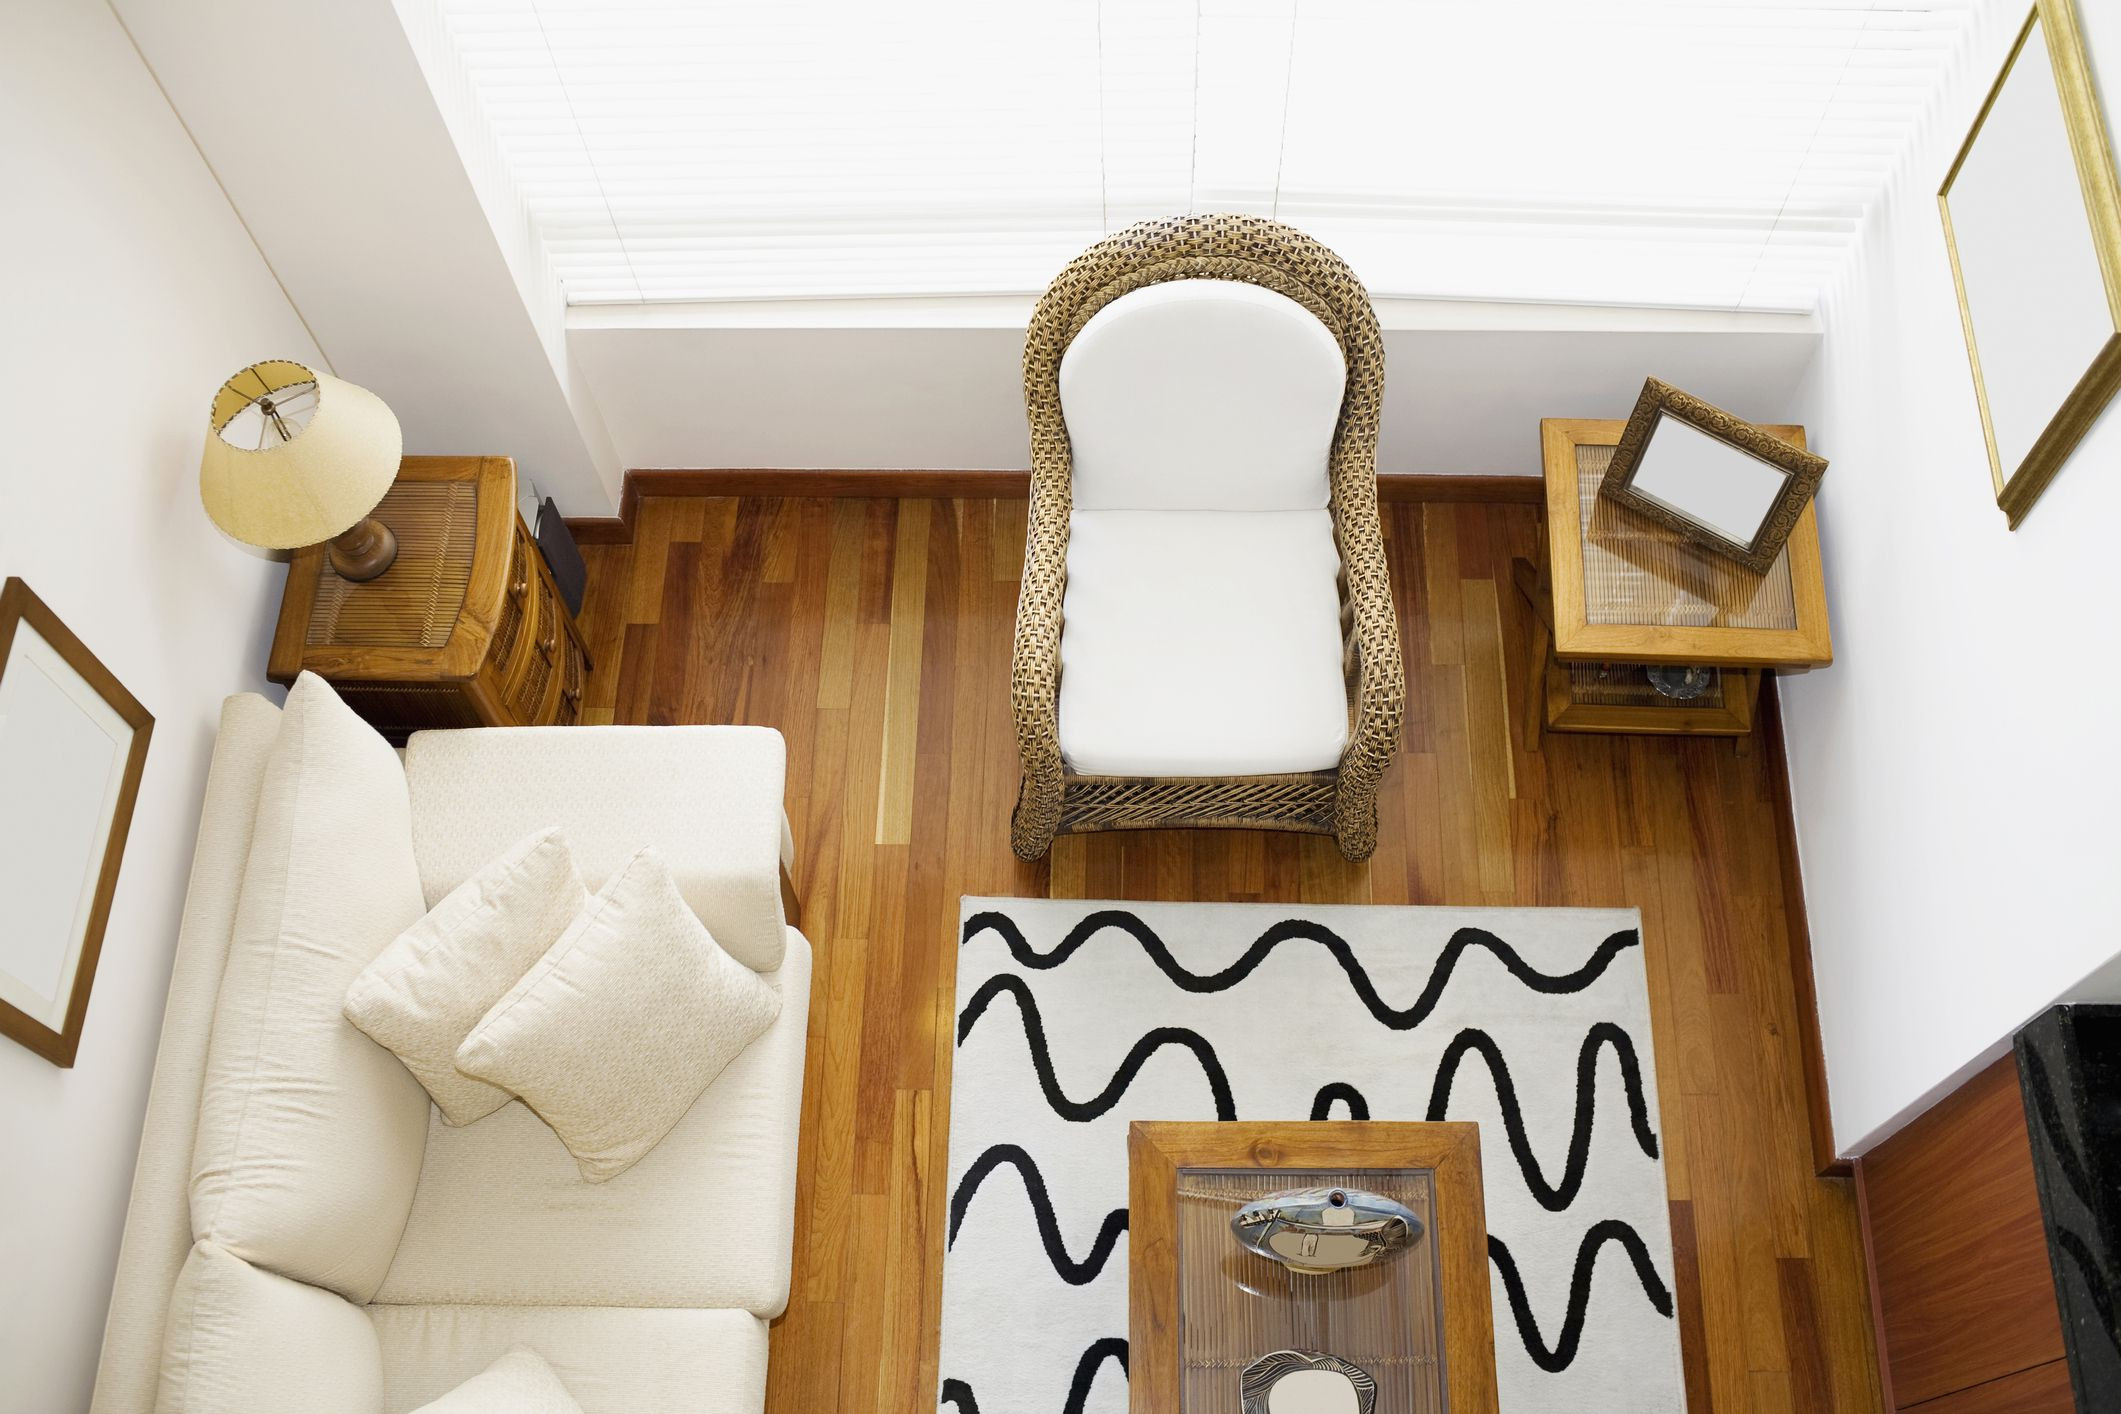 hardwood floor refinishing long beach ca of stop putting hardwood floors in every room throughout 1480712606 hardwood floor rug